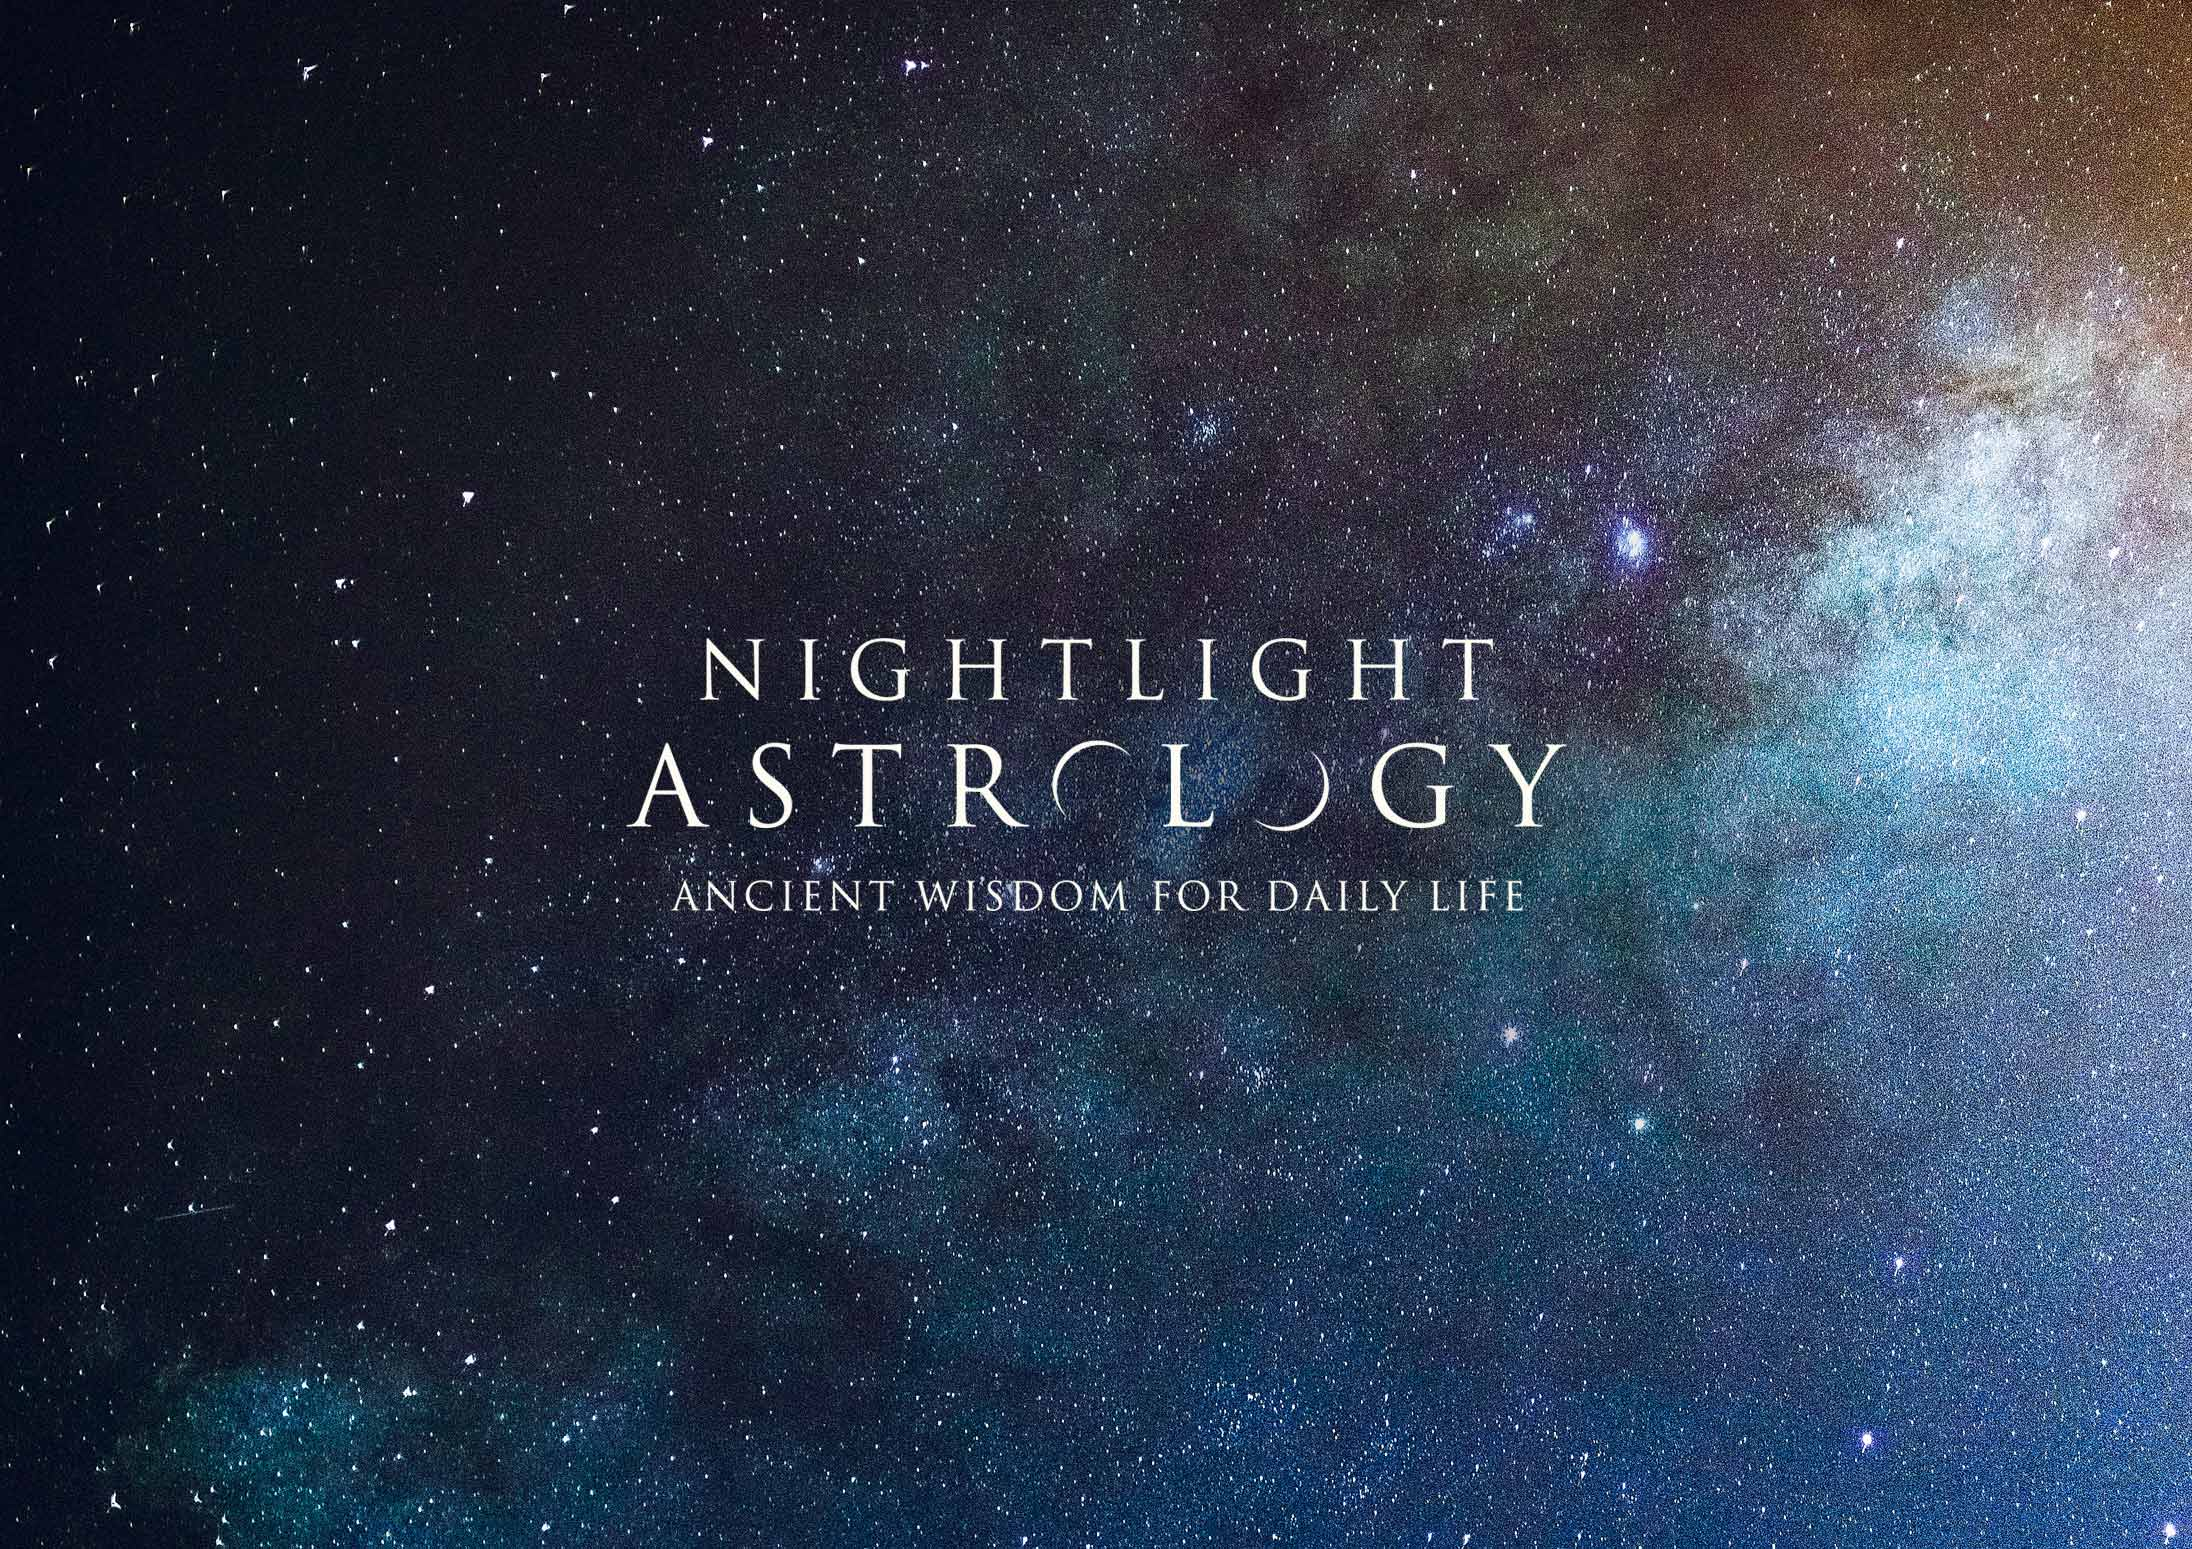 Nightlight Astrology